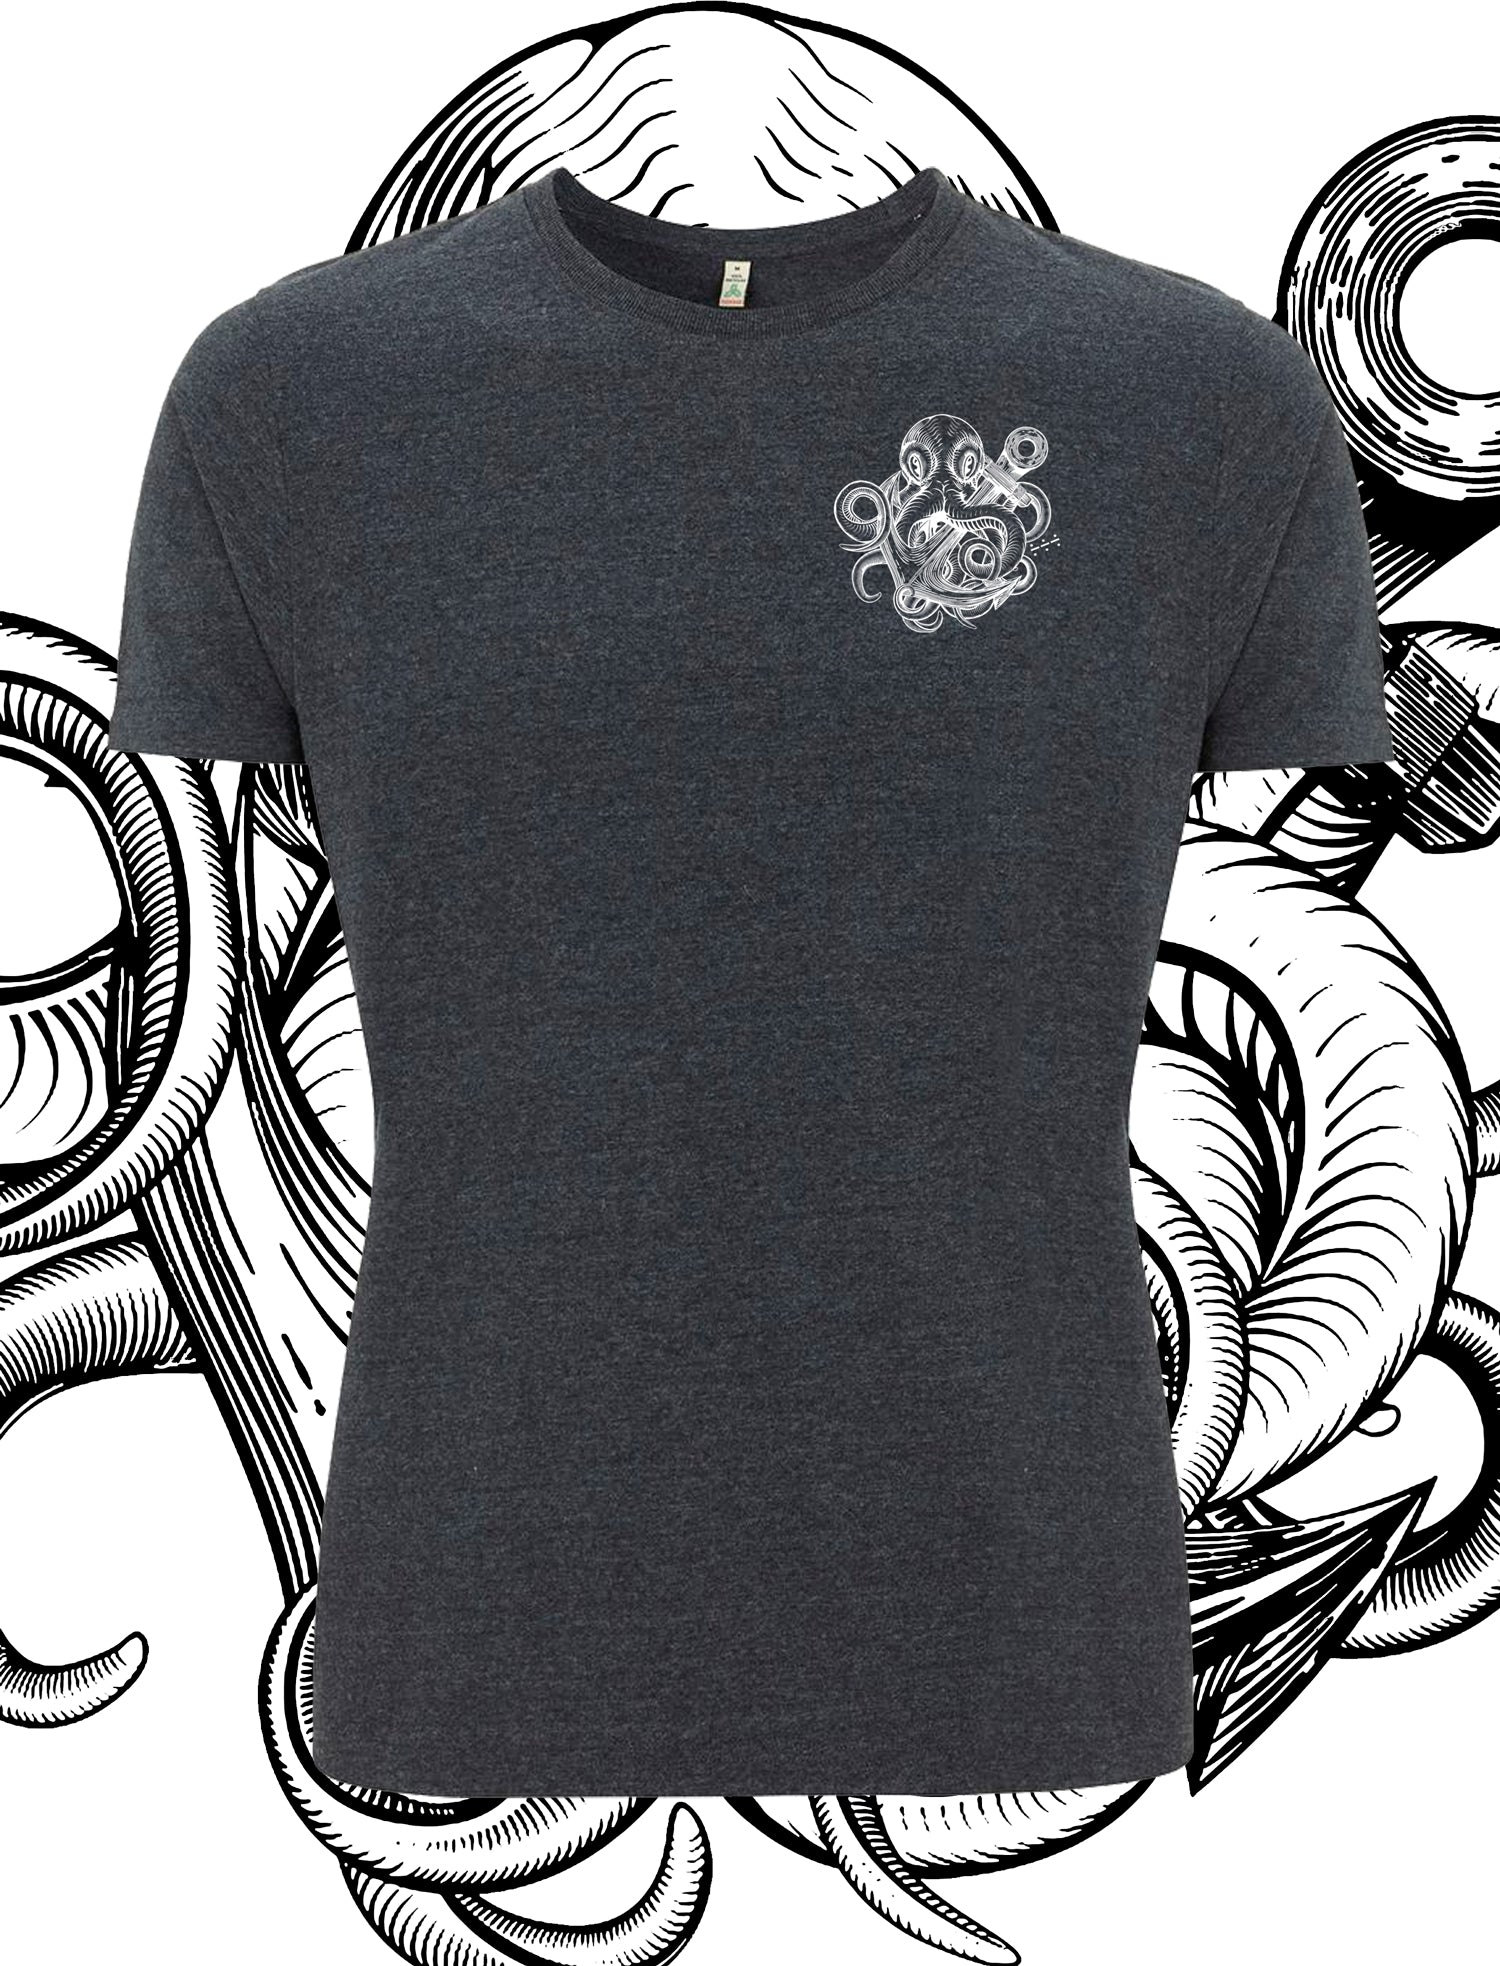 White Kraken Recycled T-Shirt - Save Our Souls Clothing